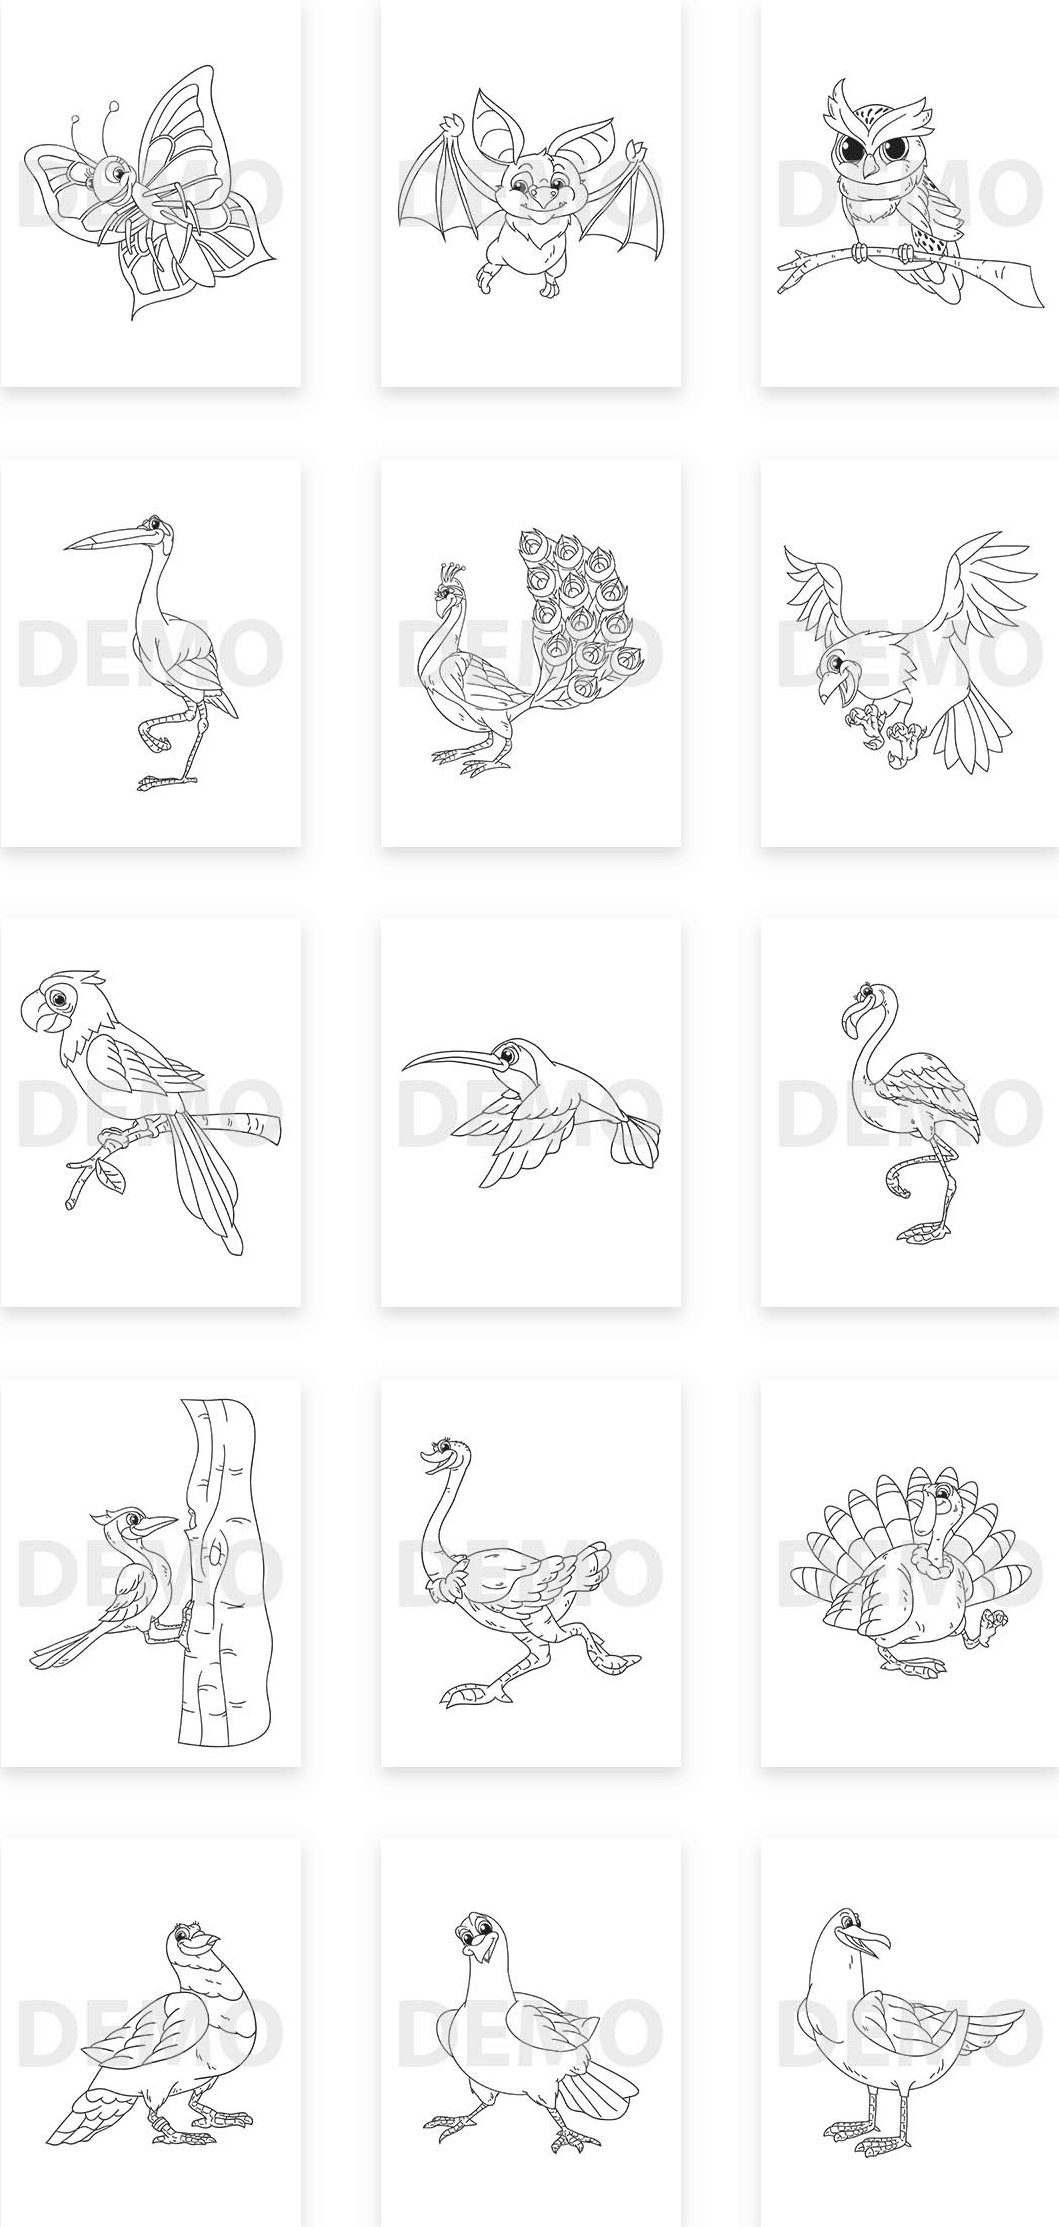 Flying Animal Coloring Pack Plr Review Coloring Books In A Proven Hot Niche Create Flyers Illustration Software Coloring Books